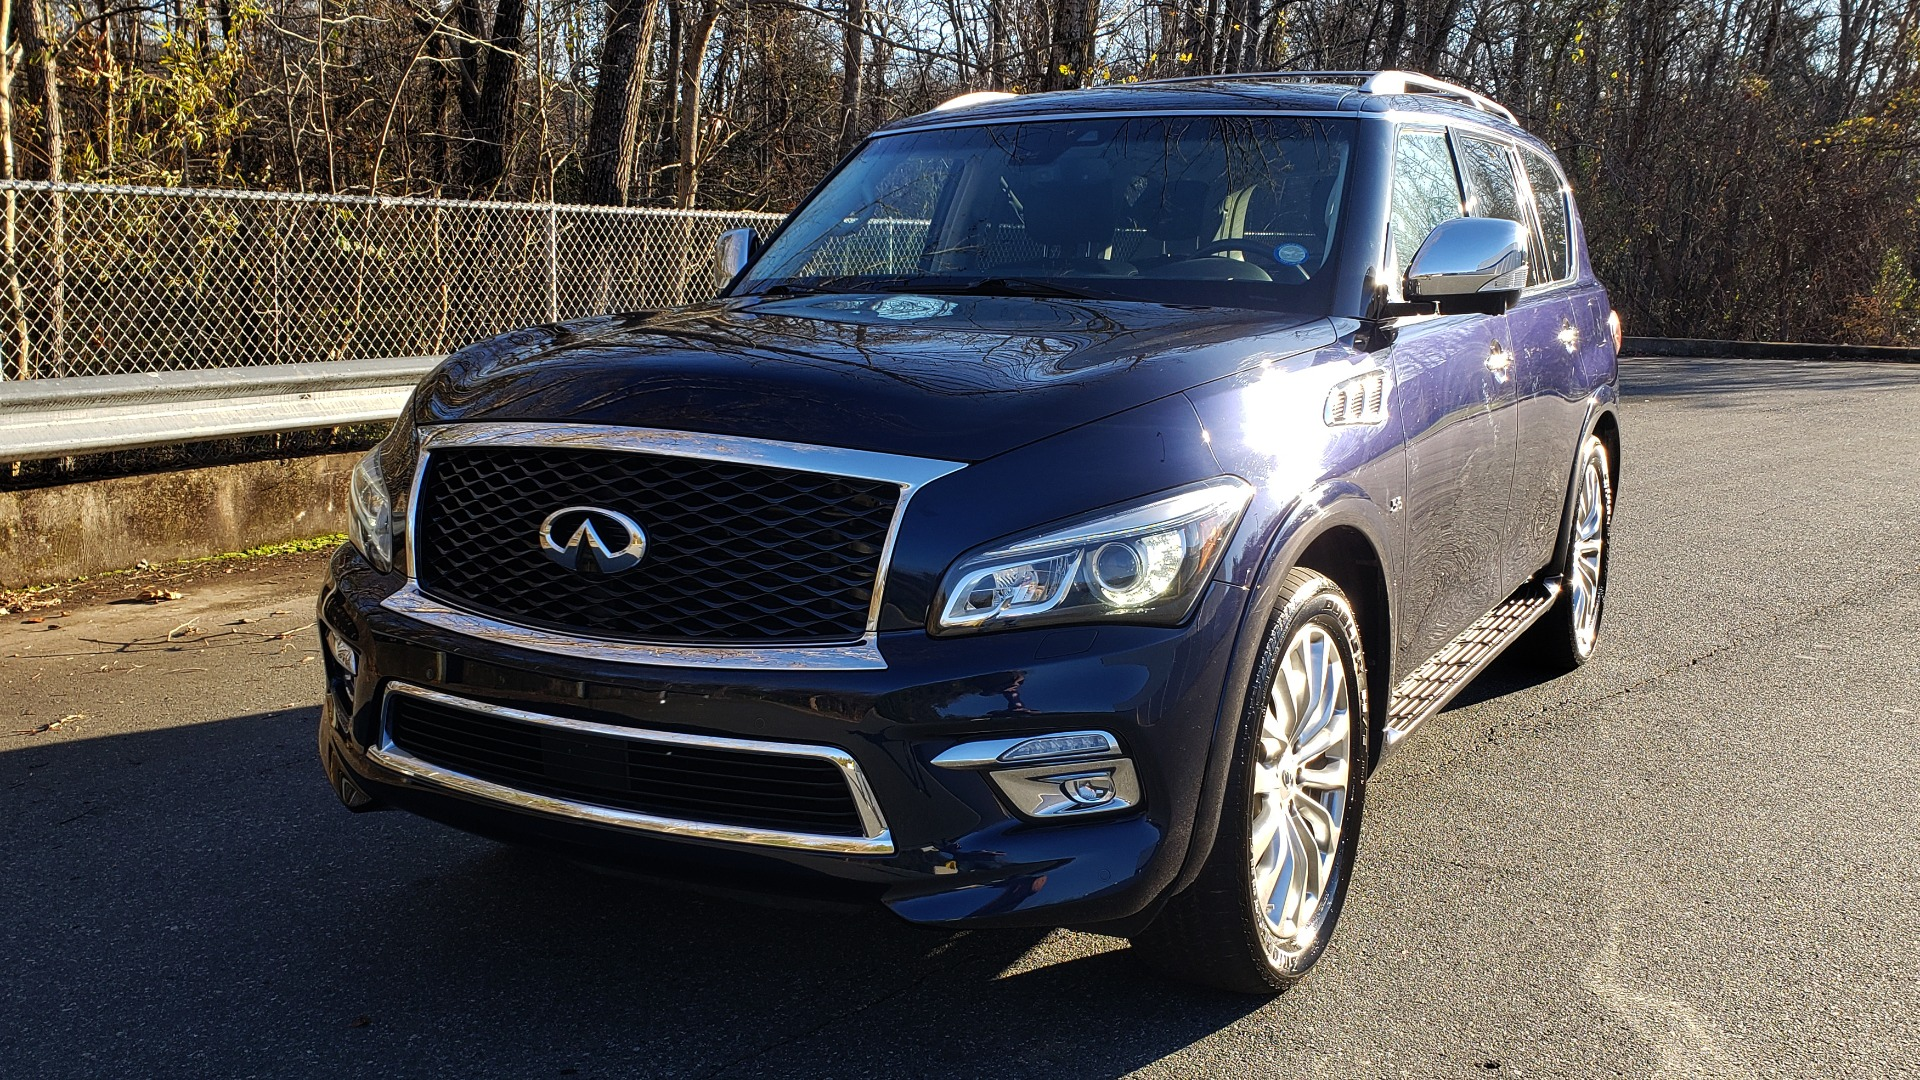 Used 2017 INFINITI QX80 4WD / NAV / SUNROOF / 3-ROW / THEATER PKG / REARVIEW for sale $46,495 at Formula Imports in Charlotte NC 28227 2